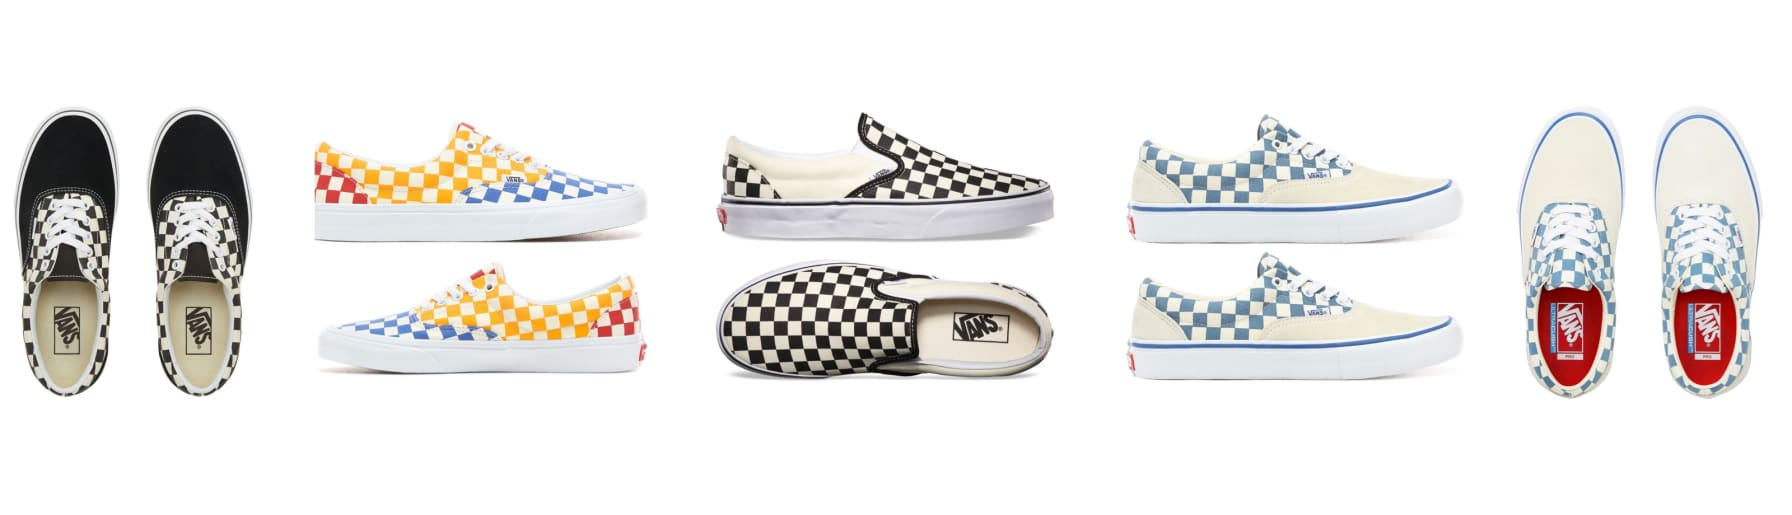 Vans Checkerboard Shoes